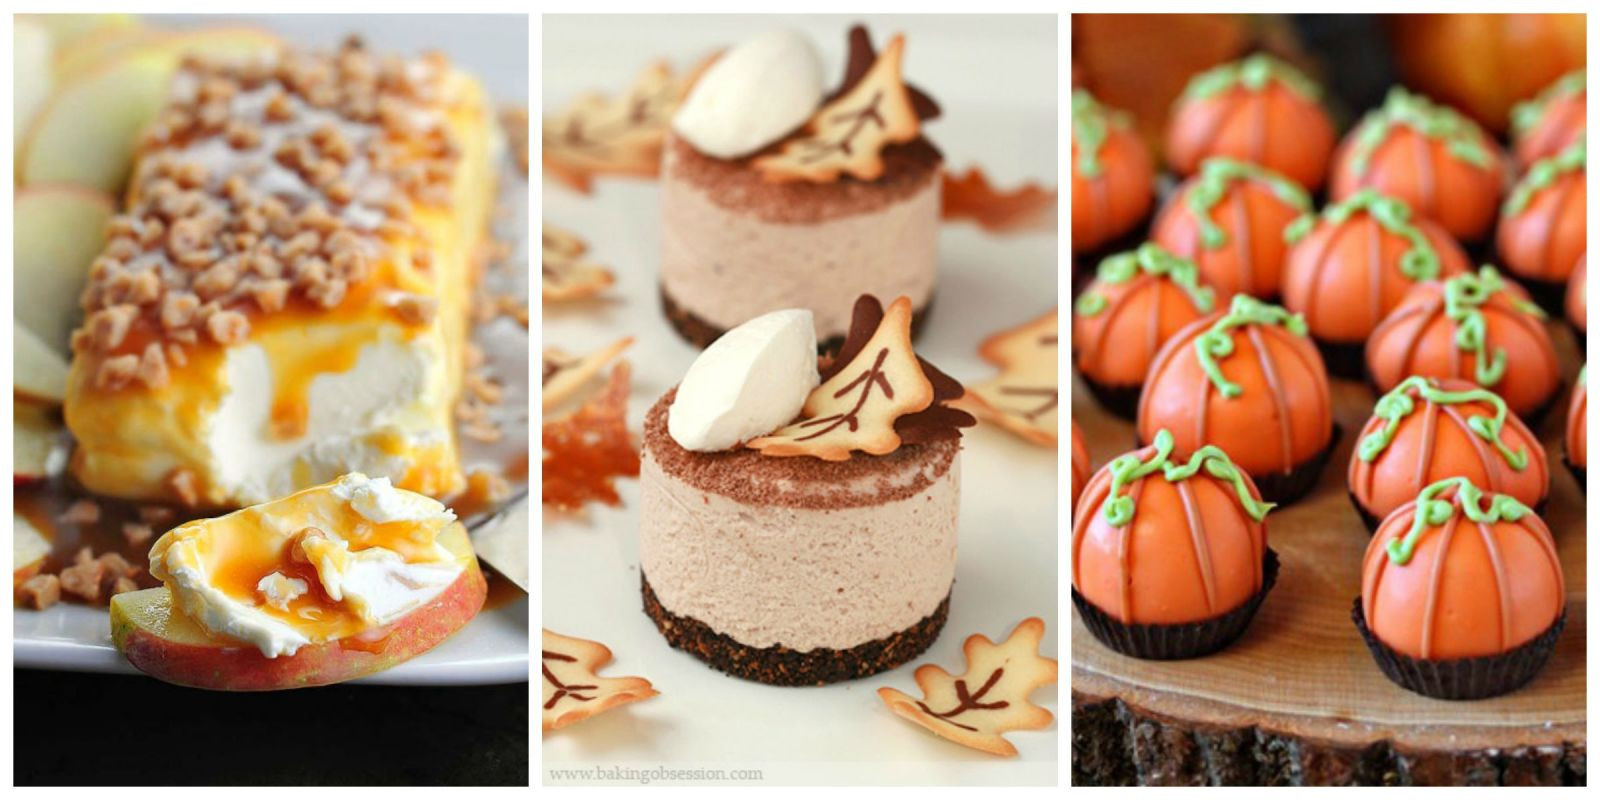 Fall Desserts Recipes  35 Easy Fall Dessert Recipes Best Treats for Autumn Parties